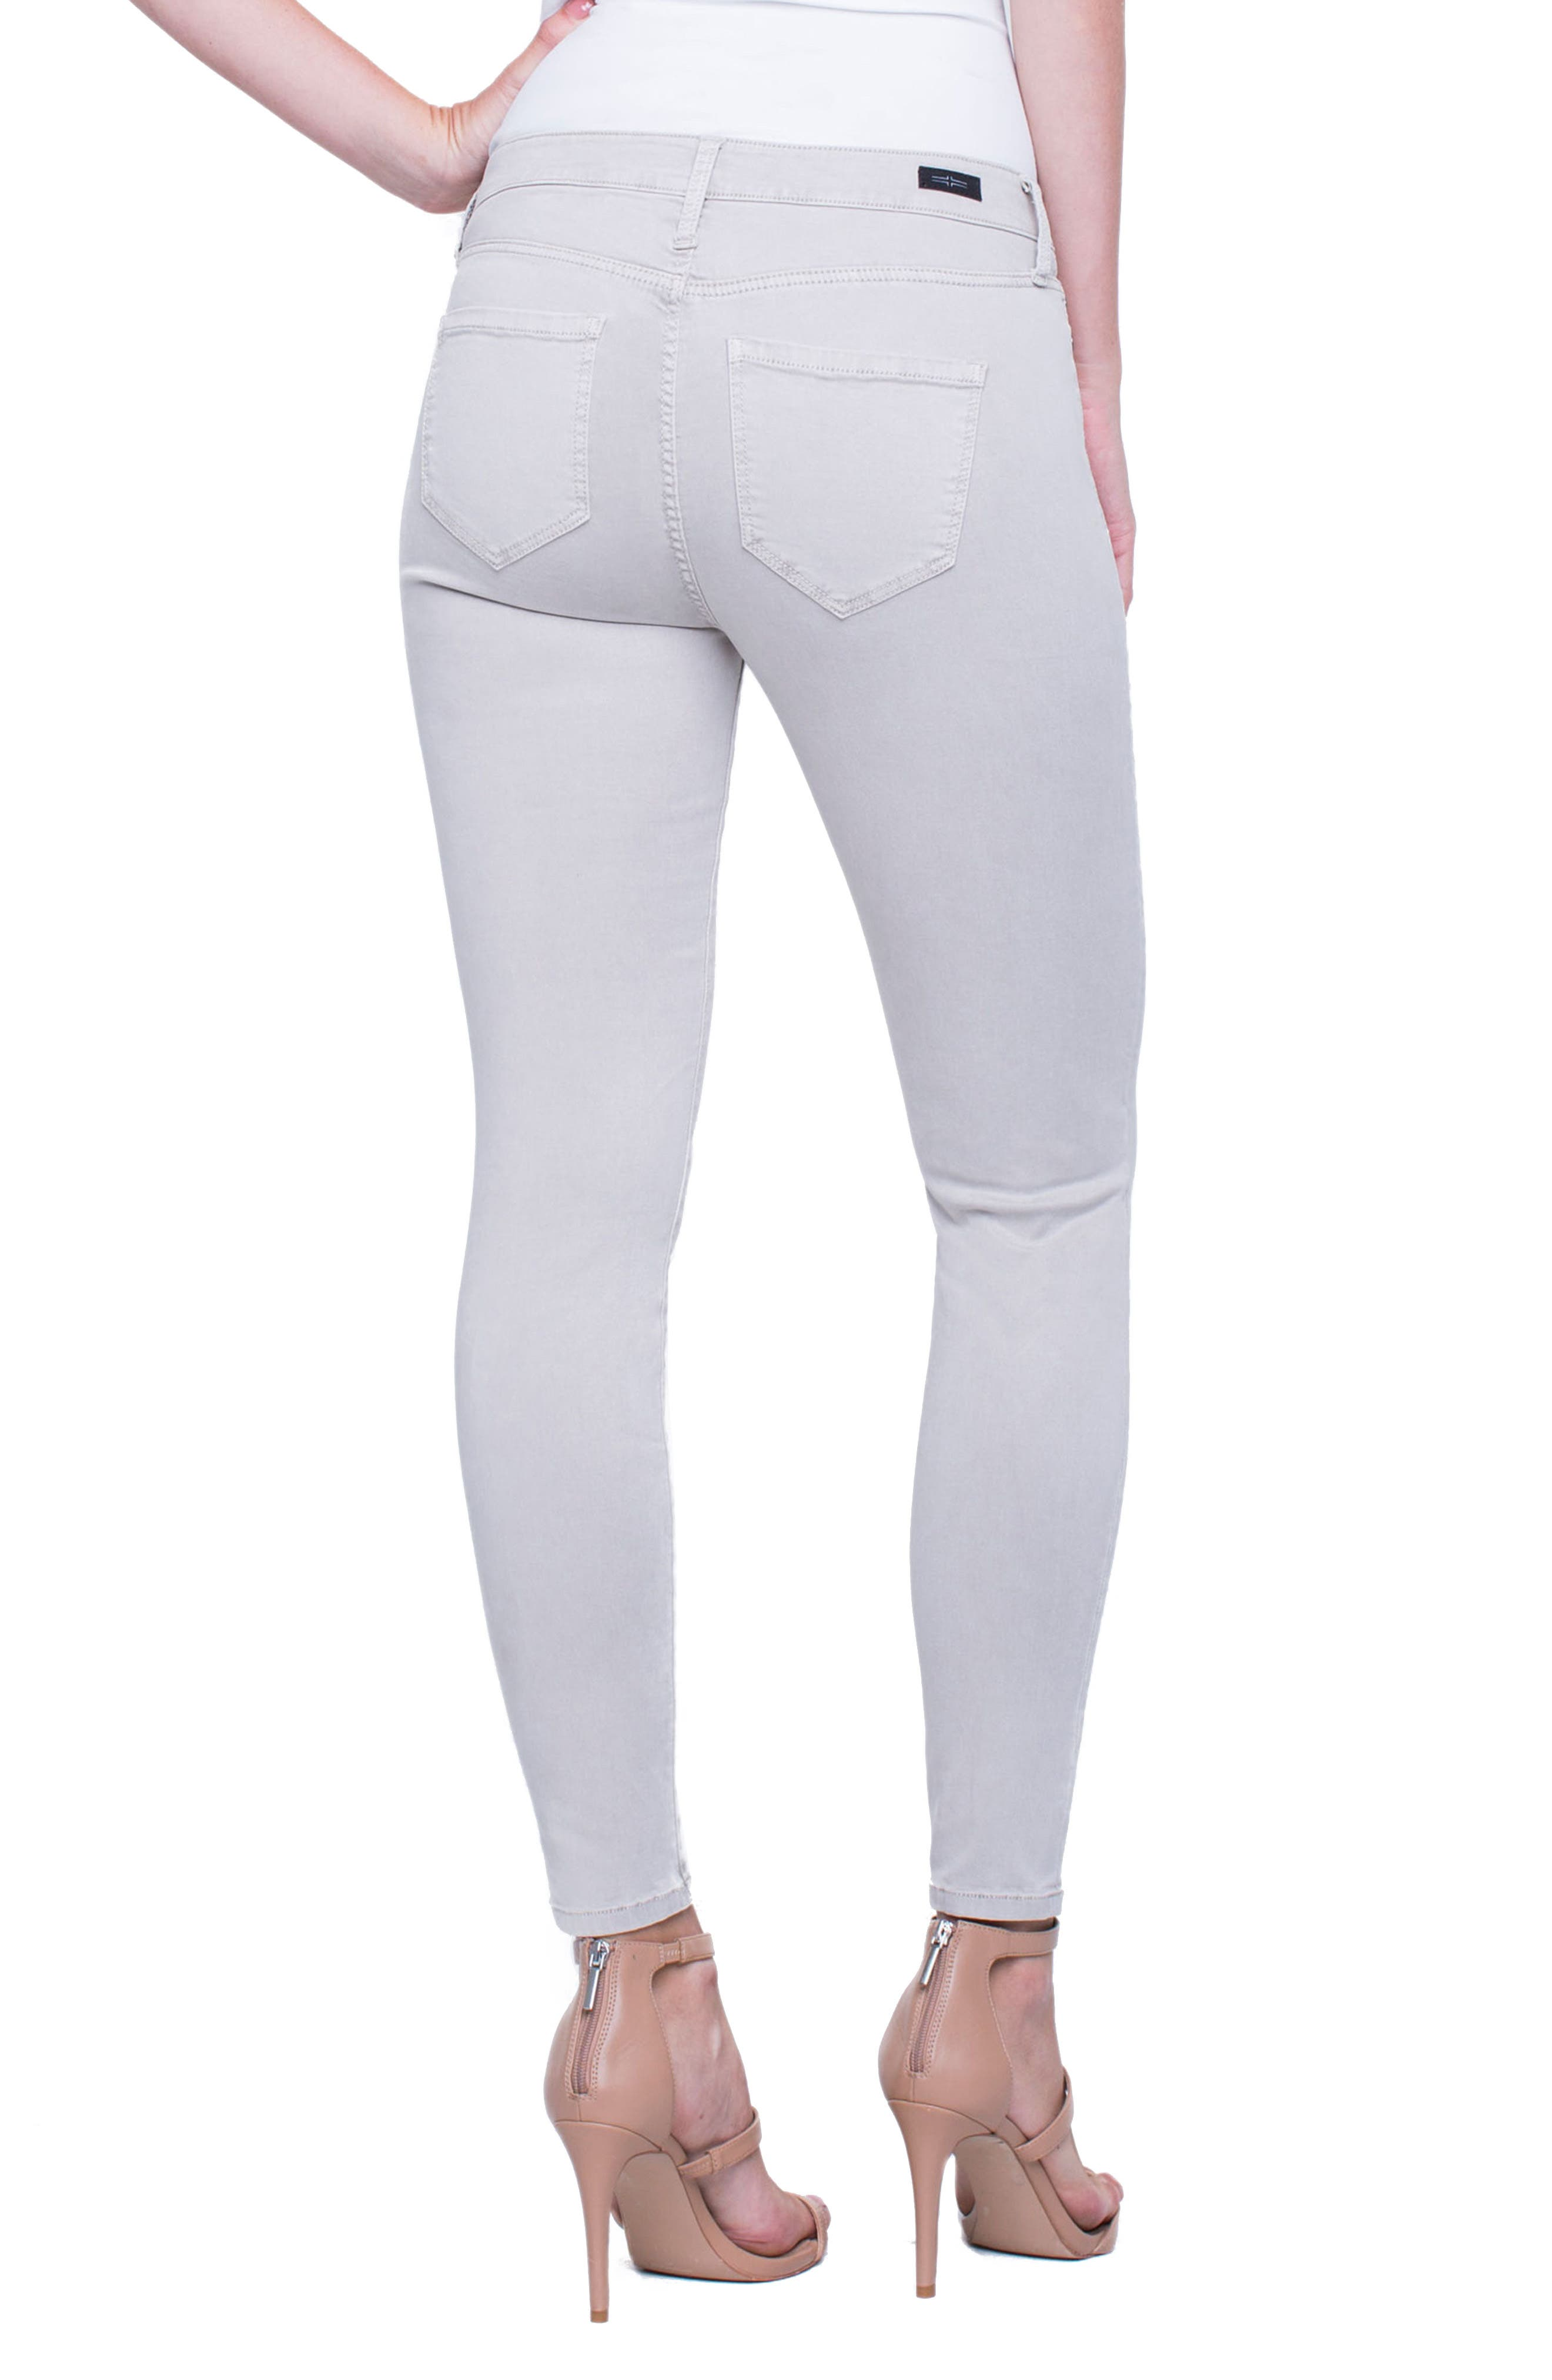 Madonna Ankle Jeans,                             Alternate thumbnail 2, color,                             Marble Ivory